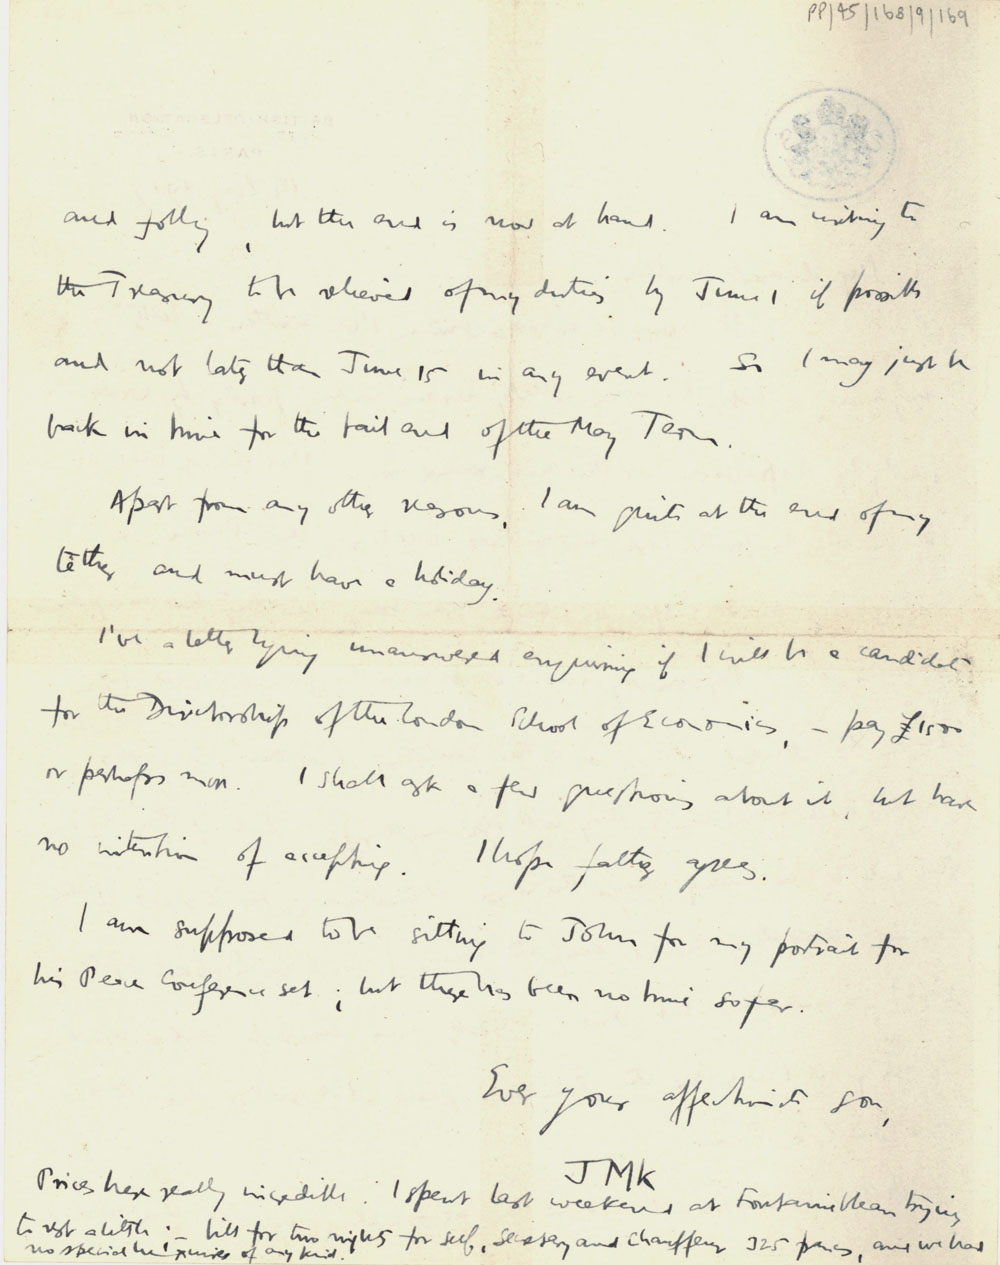 Second page of a letter from John Maynard Keynes to Florence Ada Keynes, 14 May 1919 (JMK/PP/45/168/9/169).